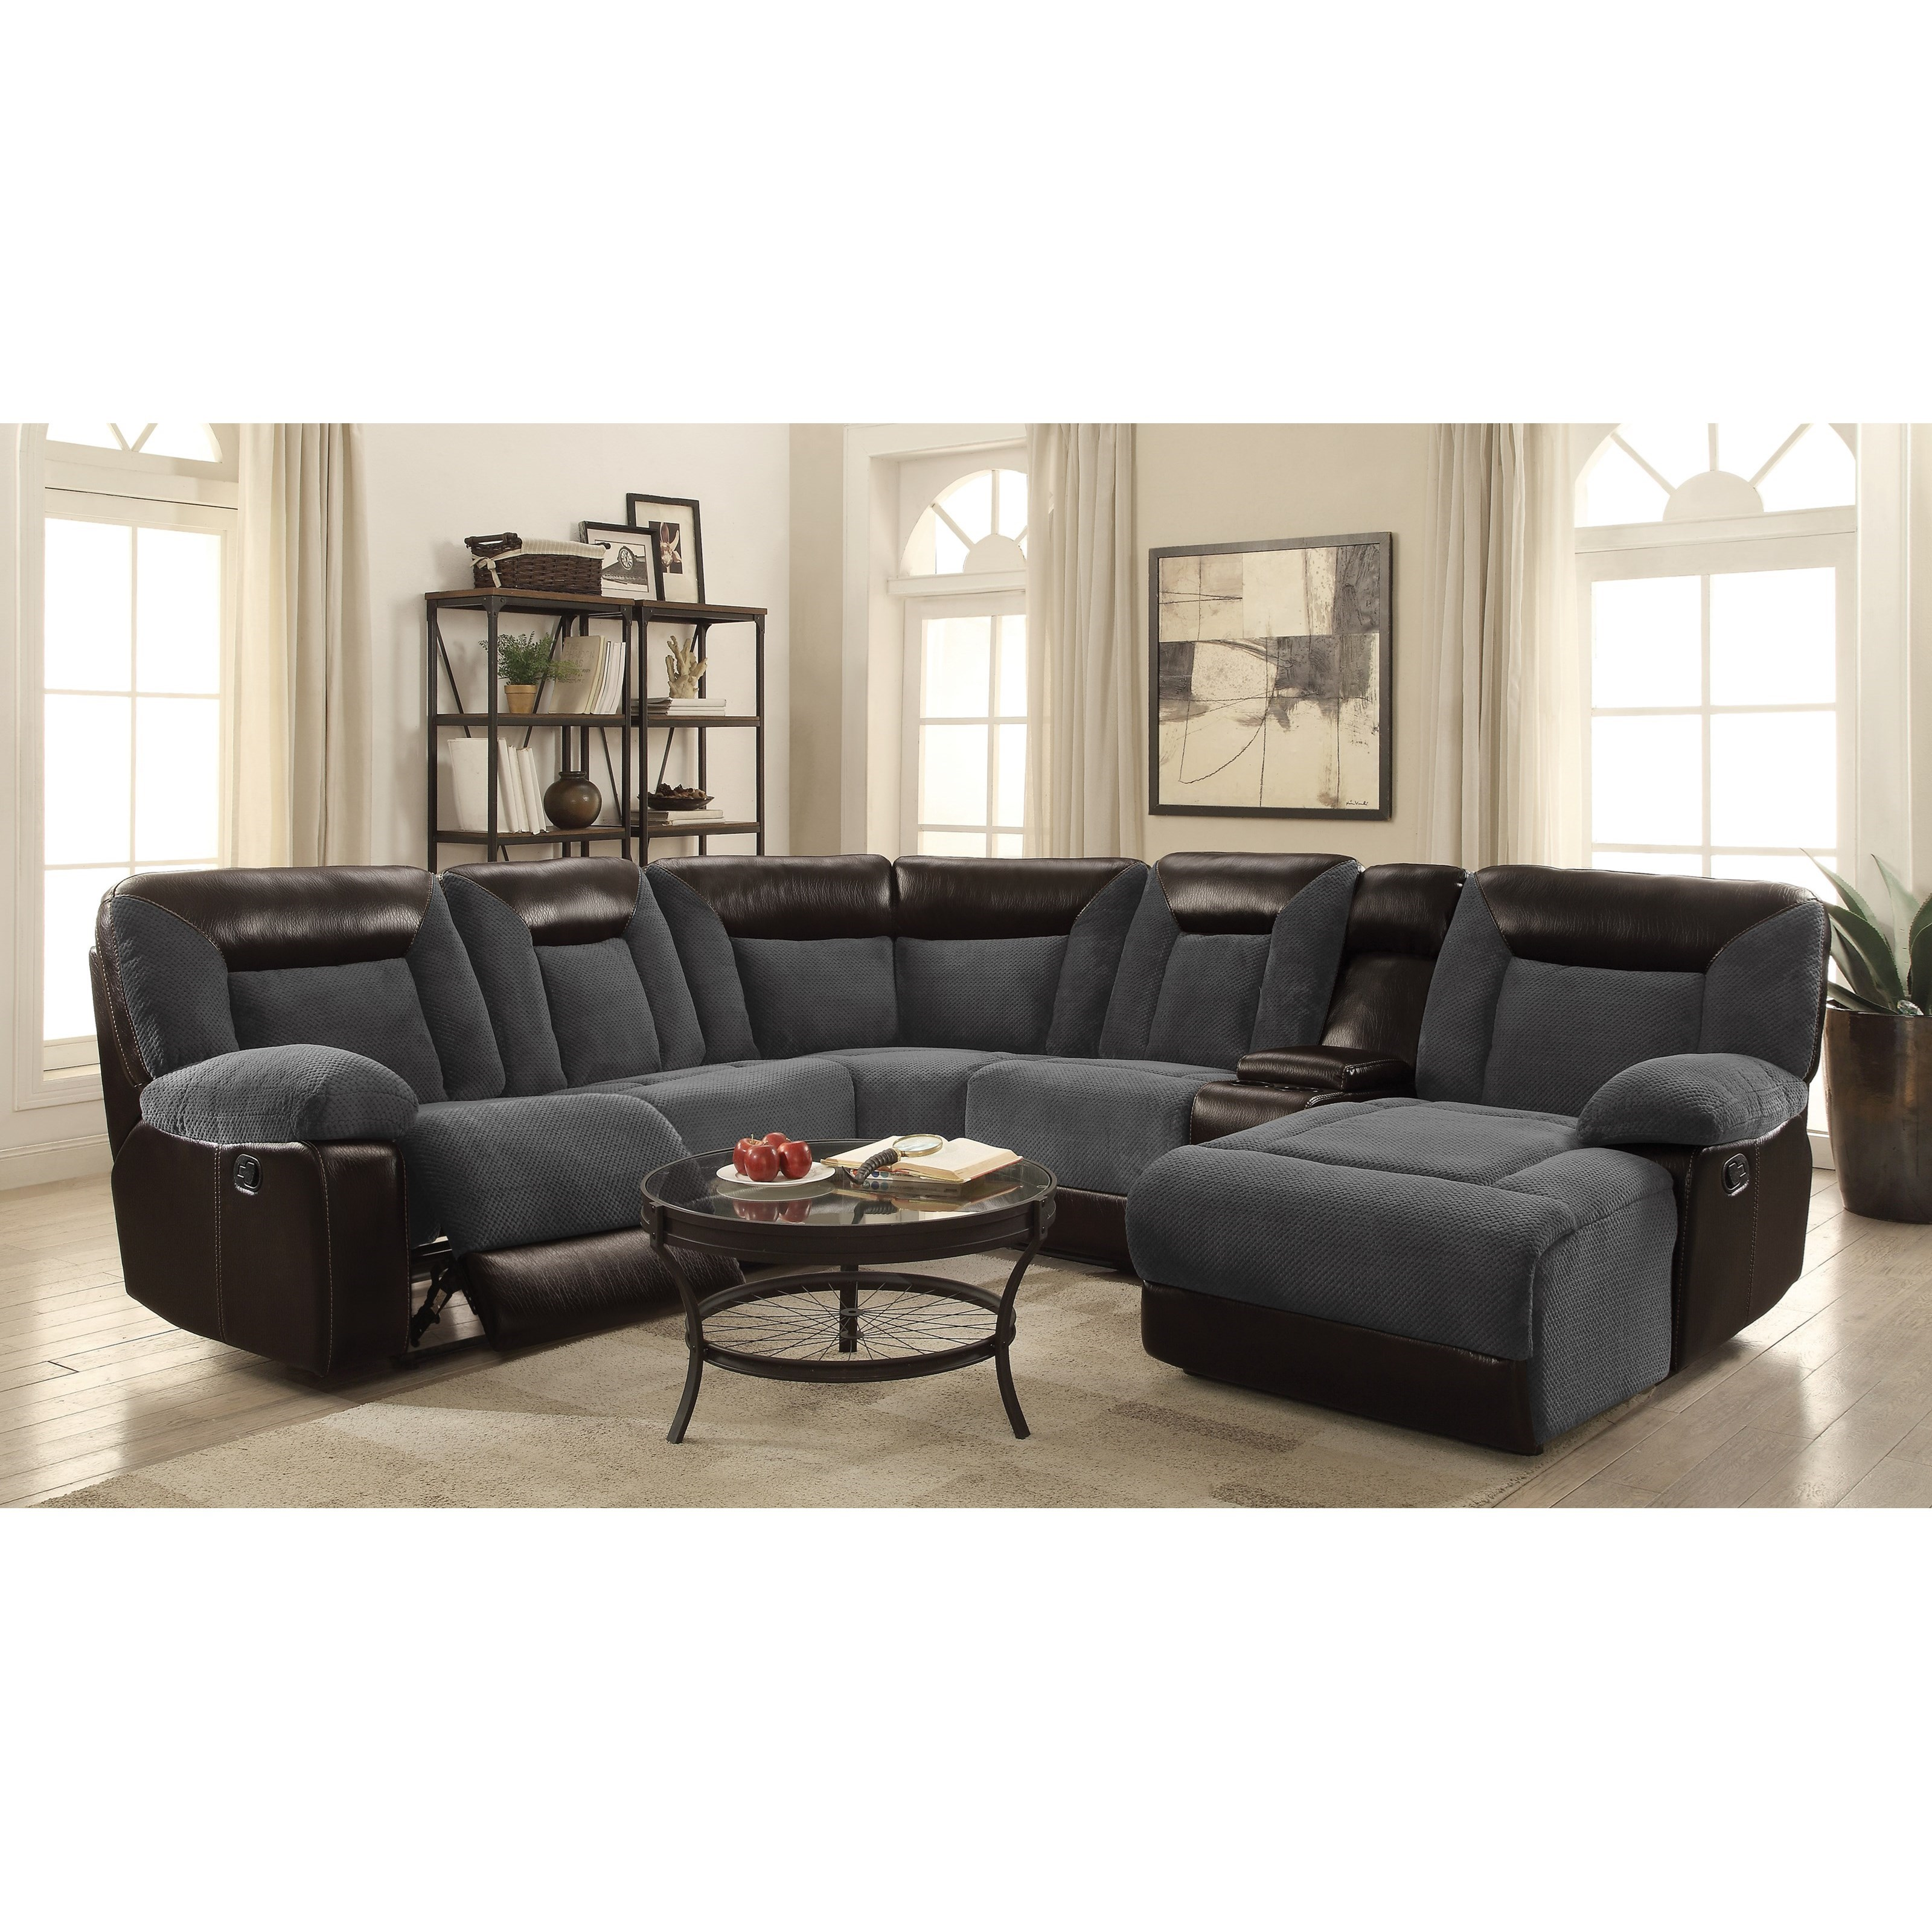 cybele modular motion sectional sofa by coaster